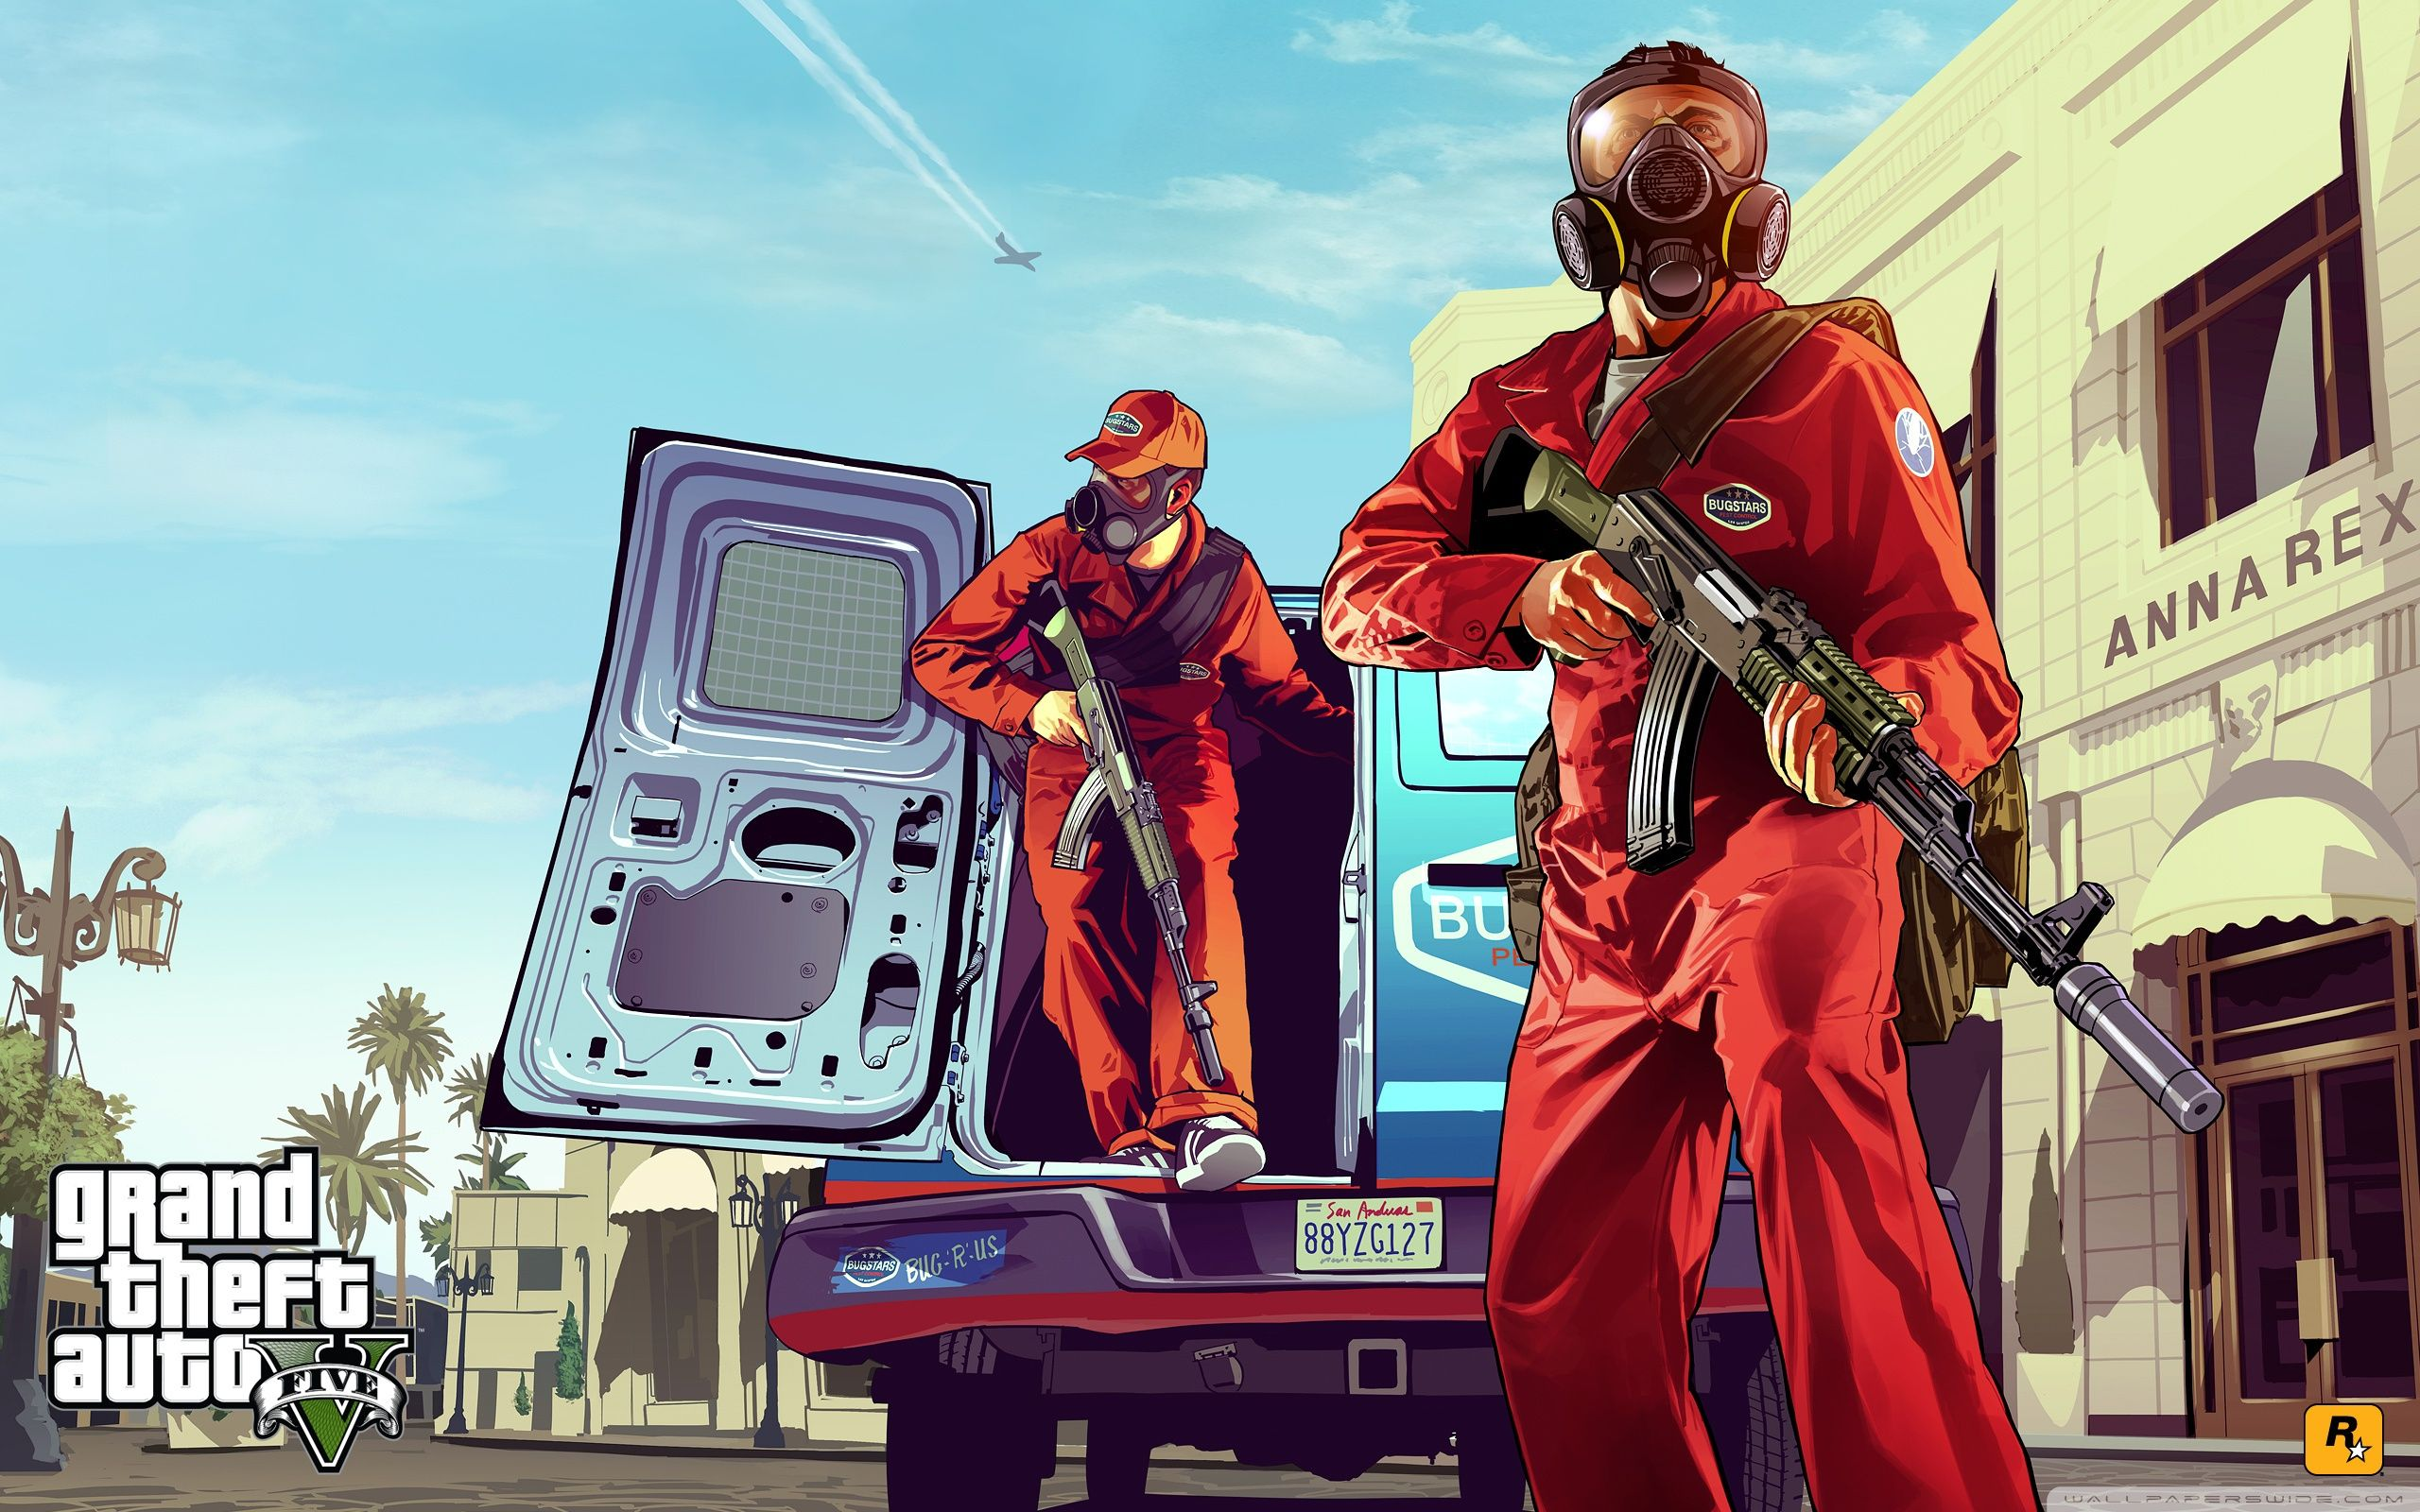 gta 5 wallpaper download hd